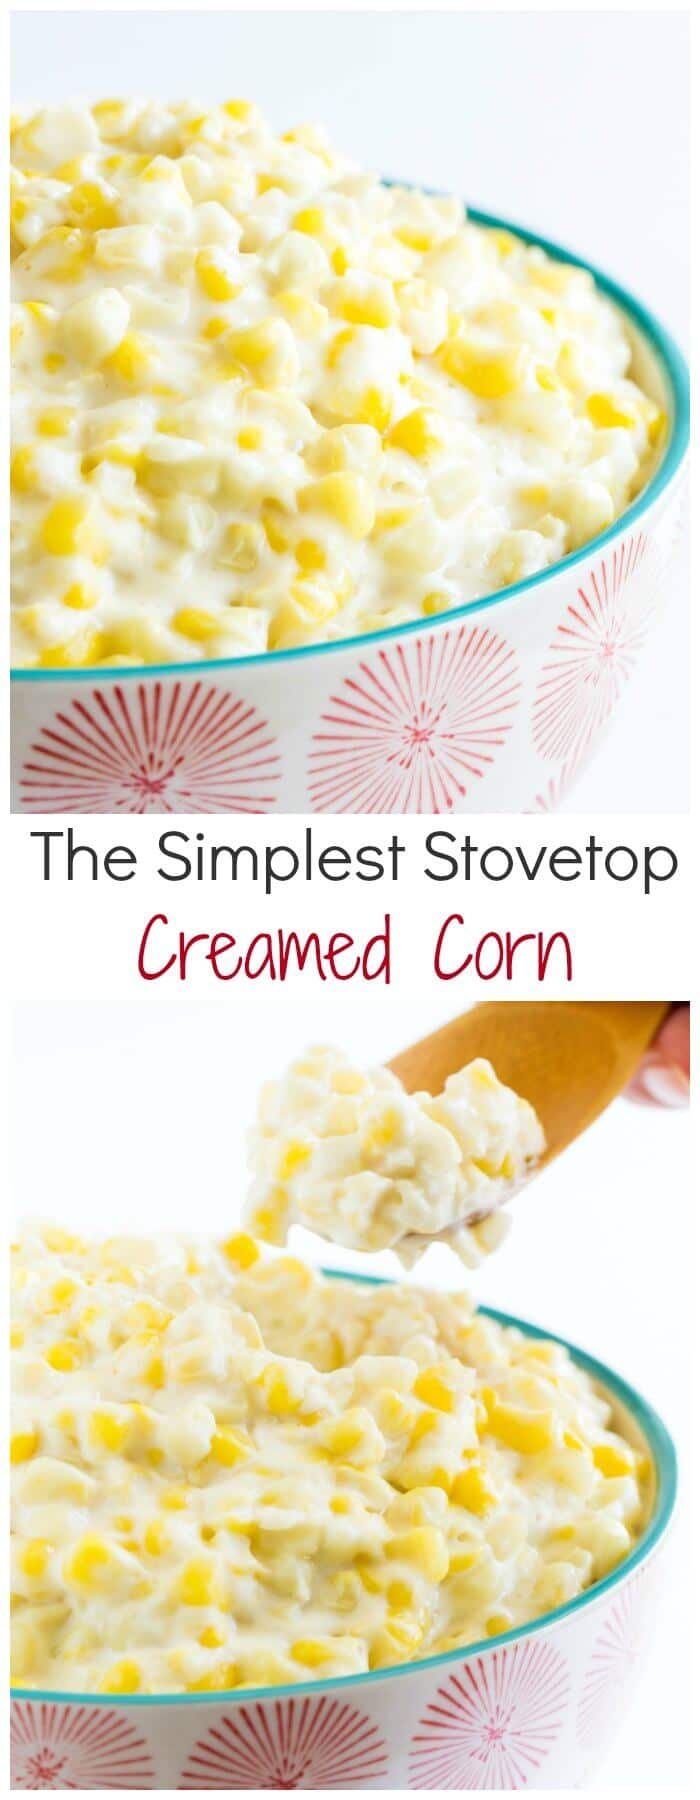 Irresistibly simple, sweet and creamy creamed corn comes together in just 10 minutes on the stovetop. Plus, you'll only need 3 ingredients!